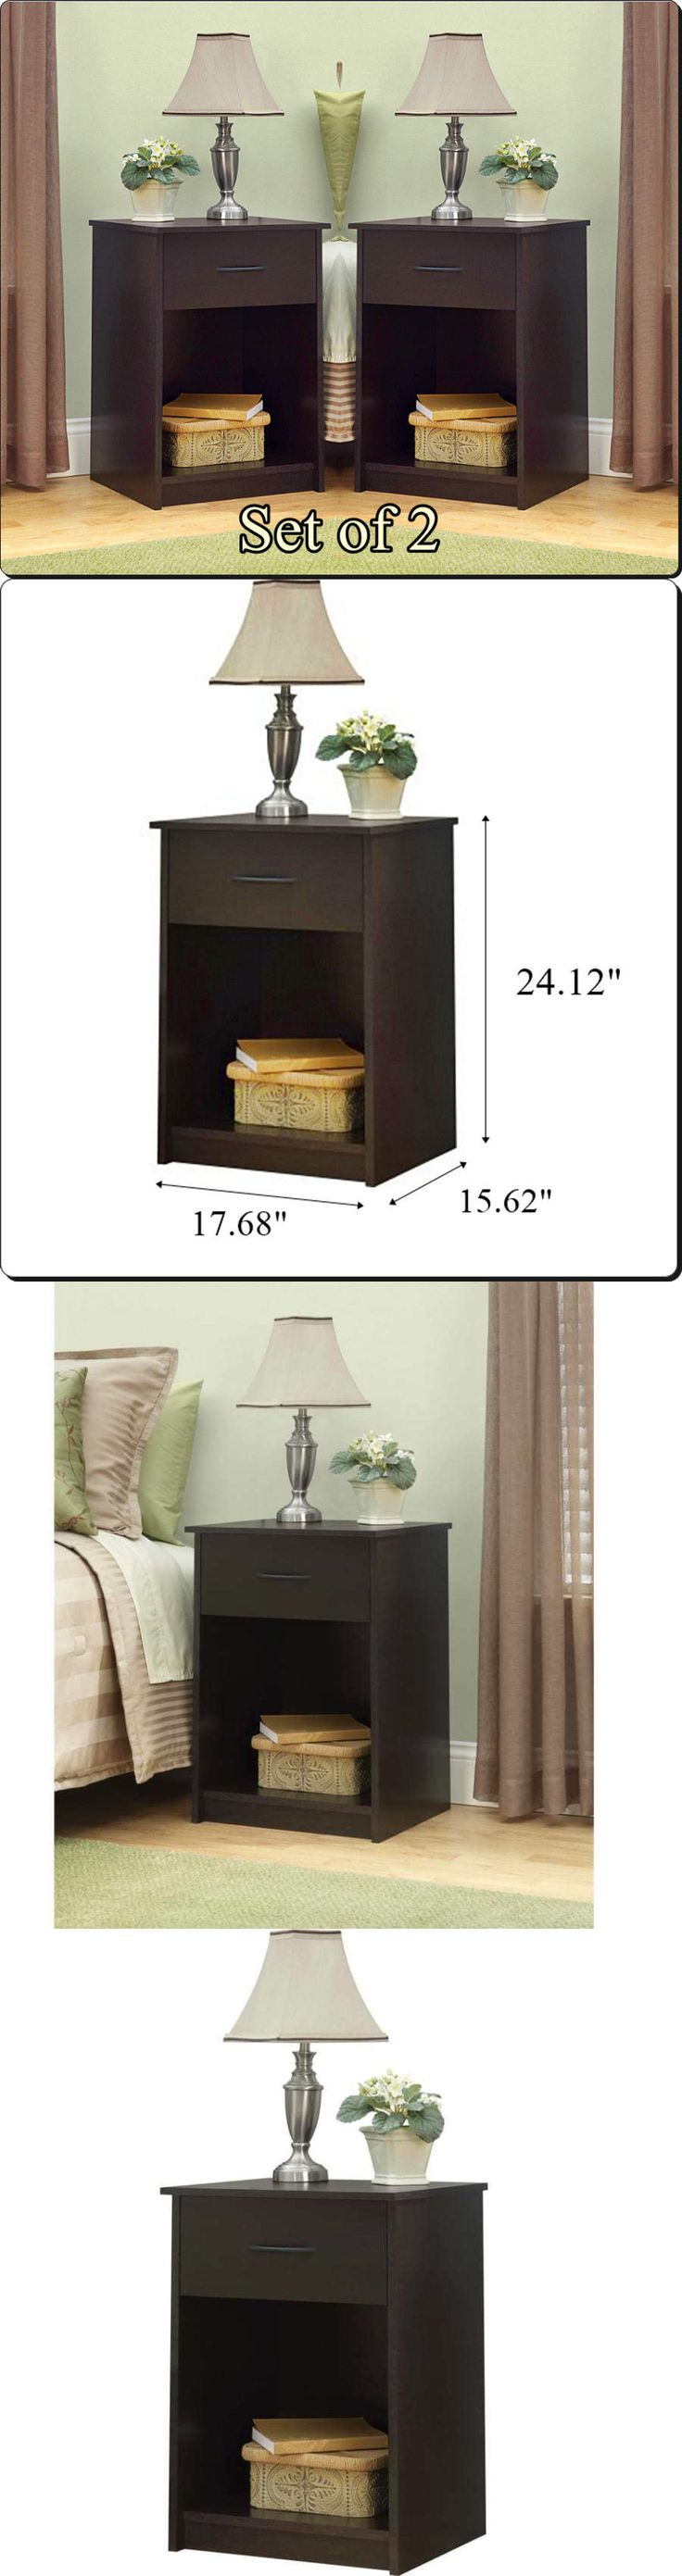 Nightstands 38199: Nightstand End Table One Drawer Shelf Cherry Set Of 2 Bedroom Furniture Sleek In -> BUY IT NOW ONLY: $80.16 on eBay!